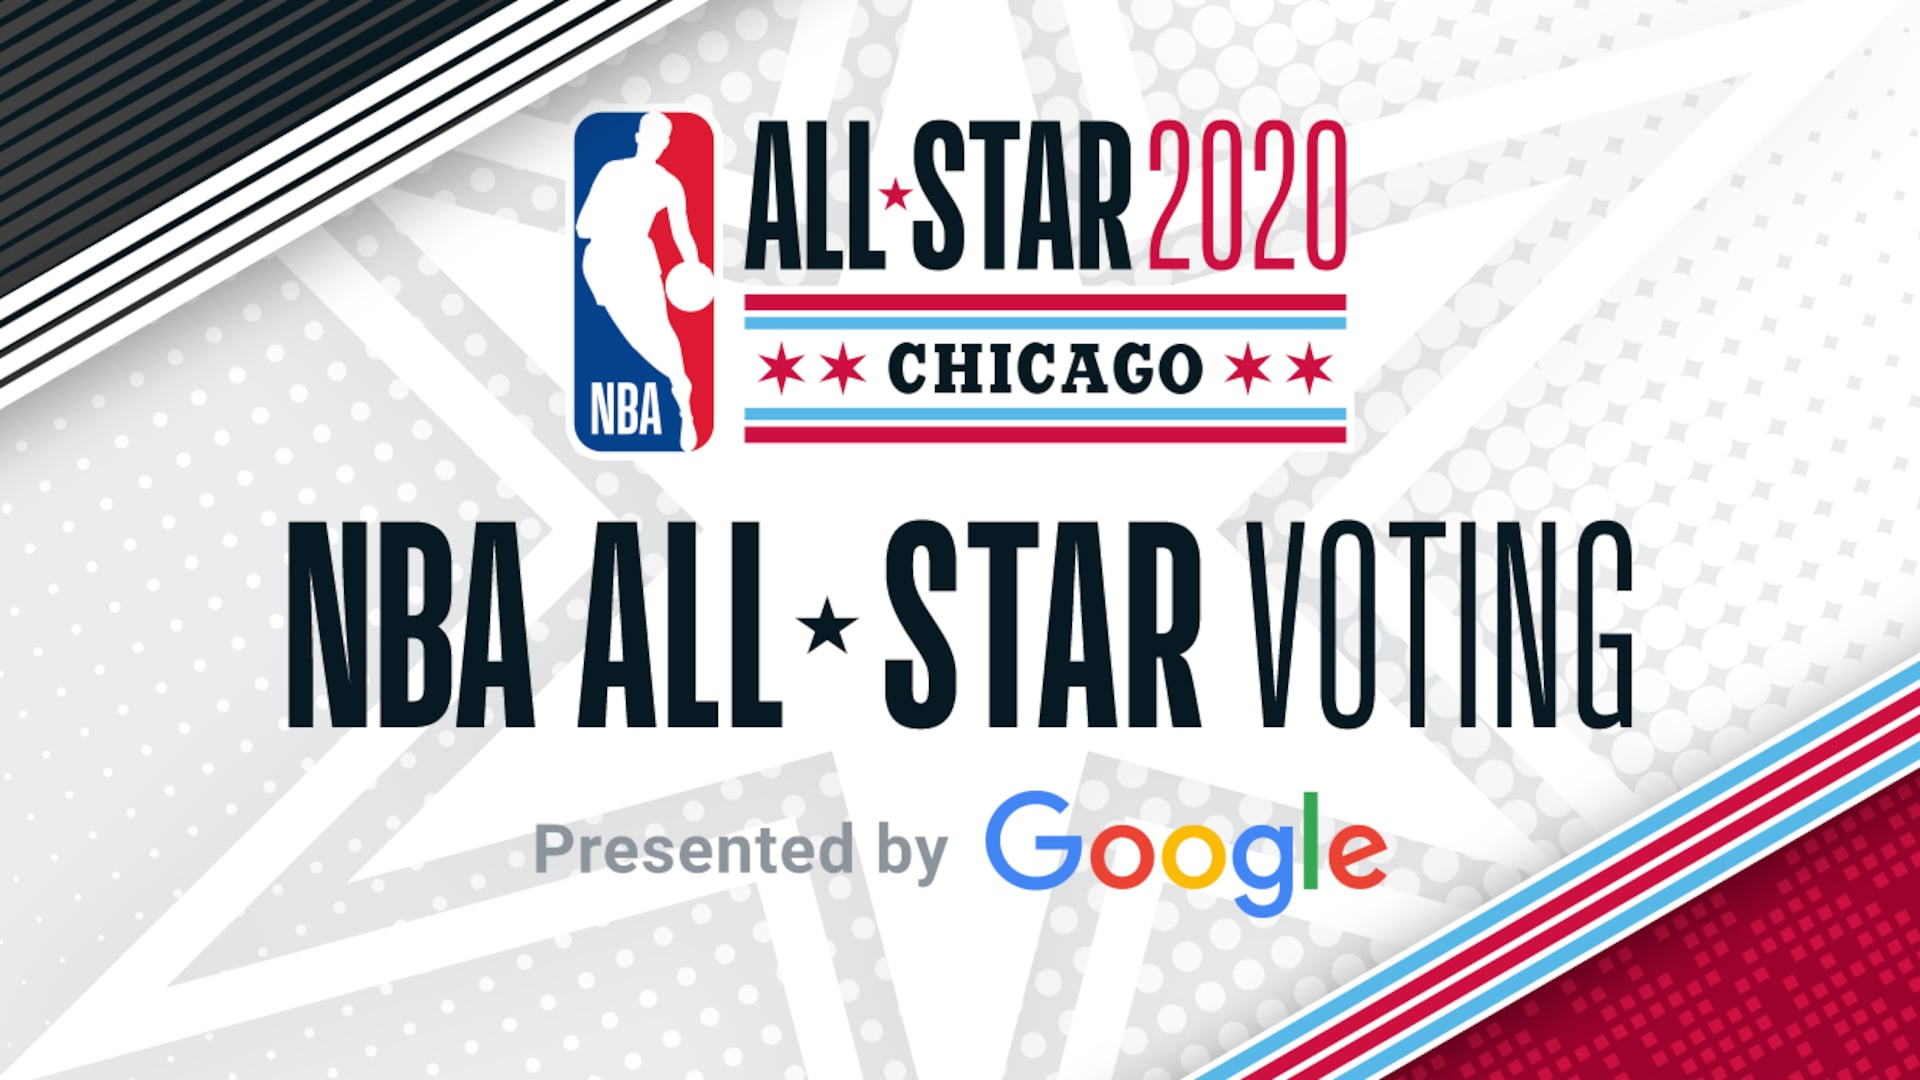 NBA All Star Voting presented by Google tips off Christmas Day 1920x1080